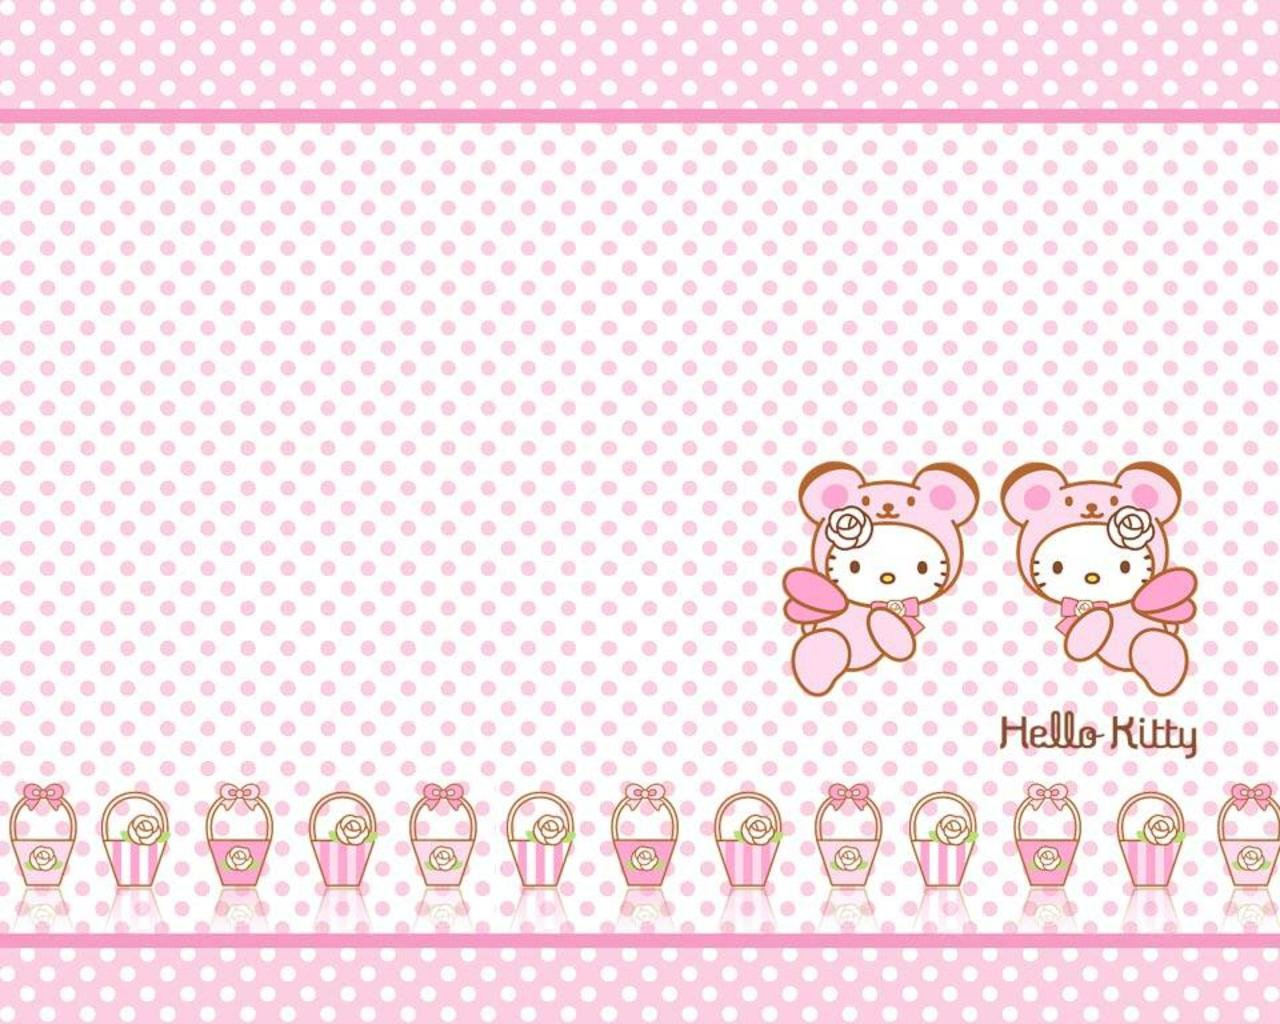 Pink Hello Kitty Background wallpaper wallpaper hd background 1280x1024